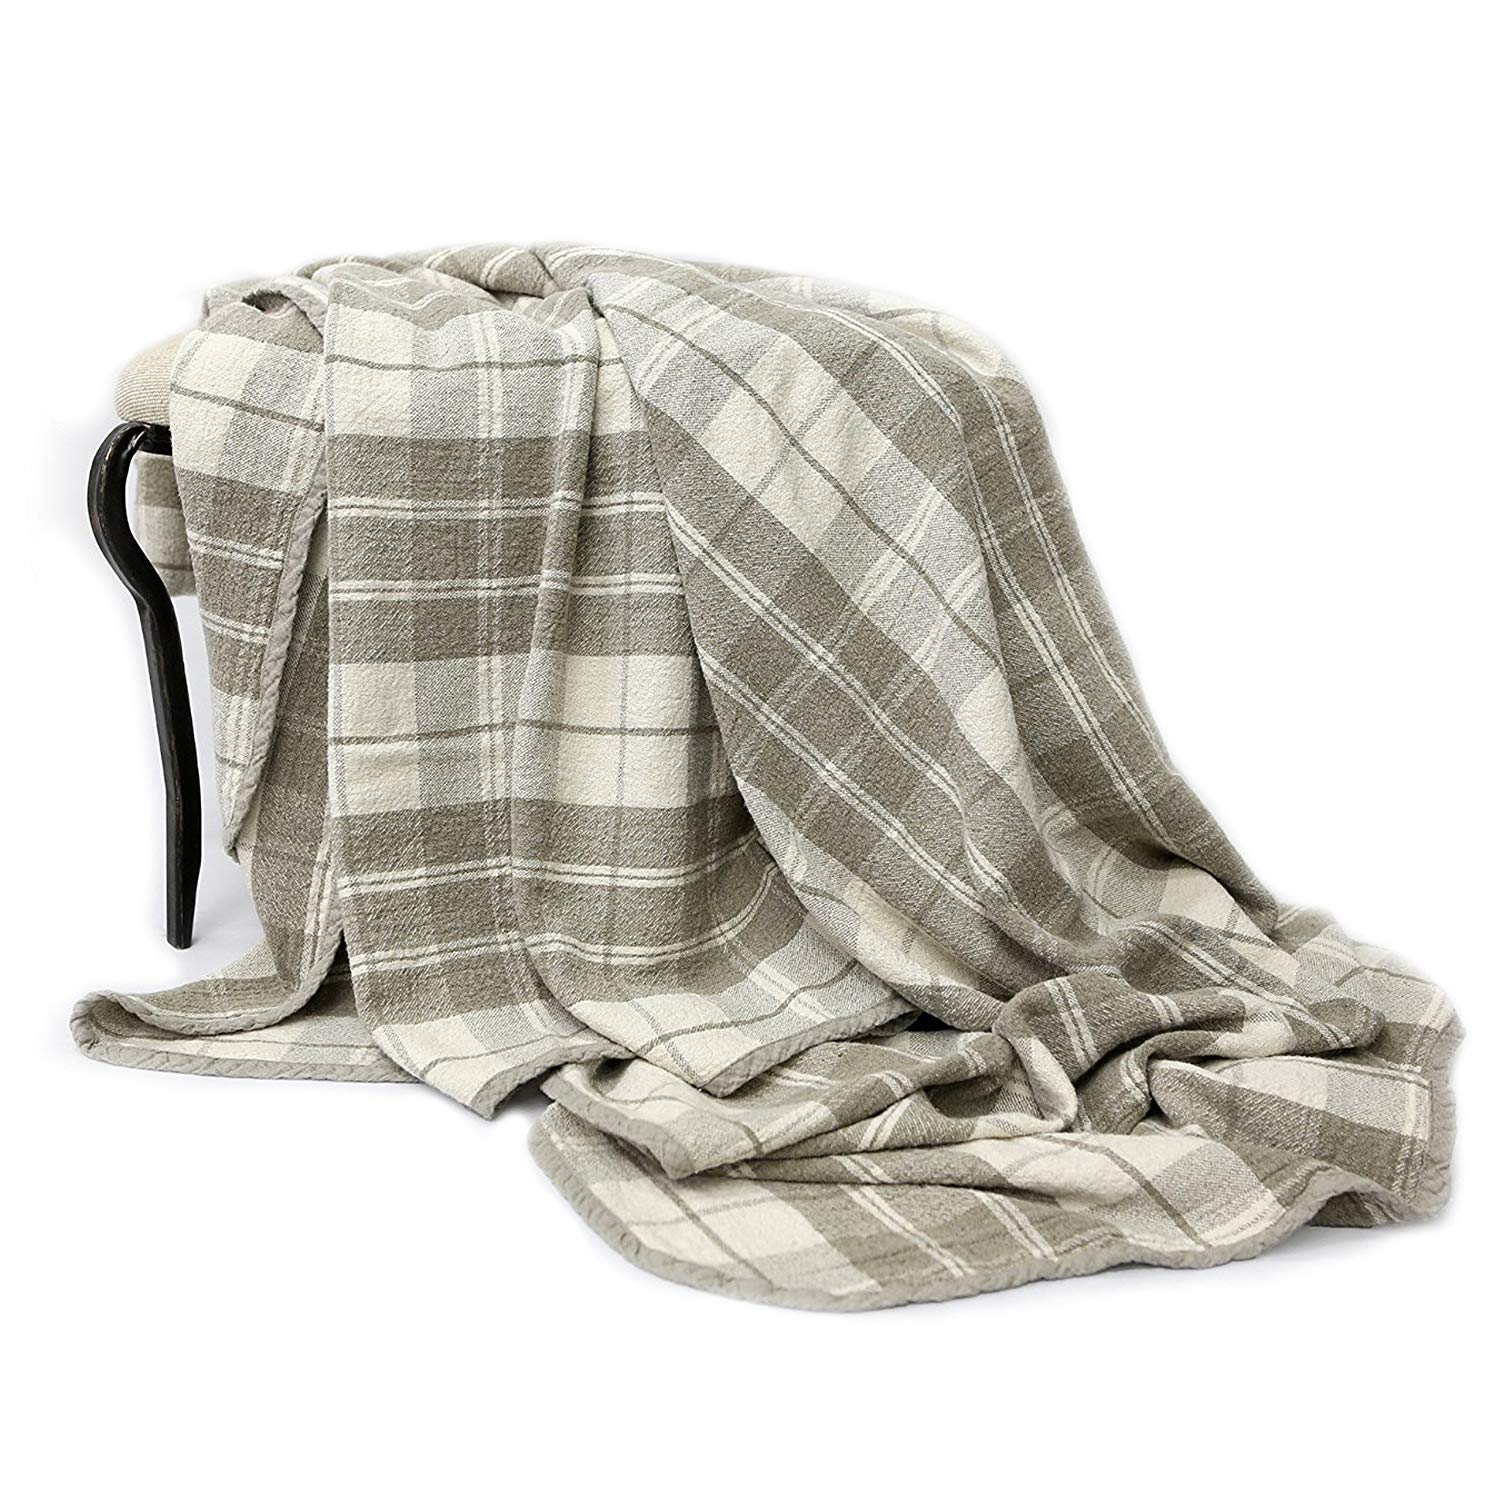 100% Pure Flax Linen Plaid Throw Blanket Size 39.37 x 57.08 Inches Eco Bed Cover (Gray)